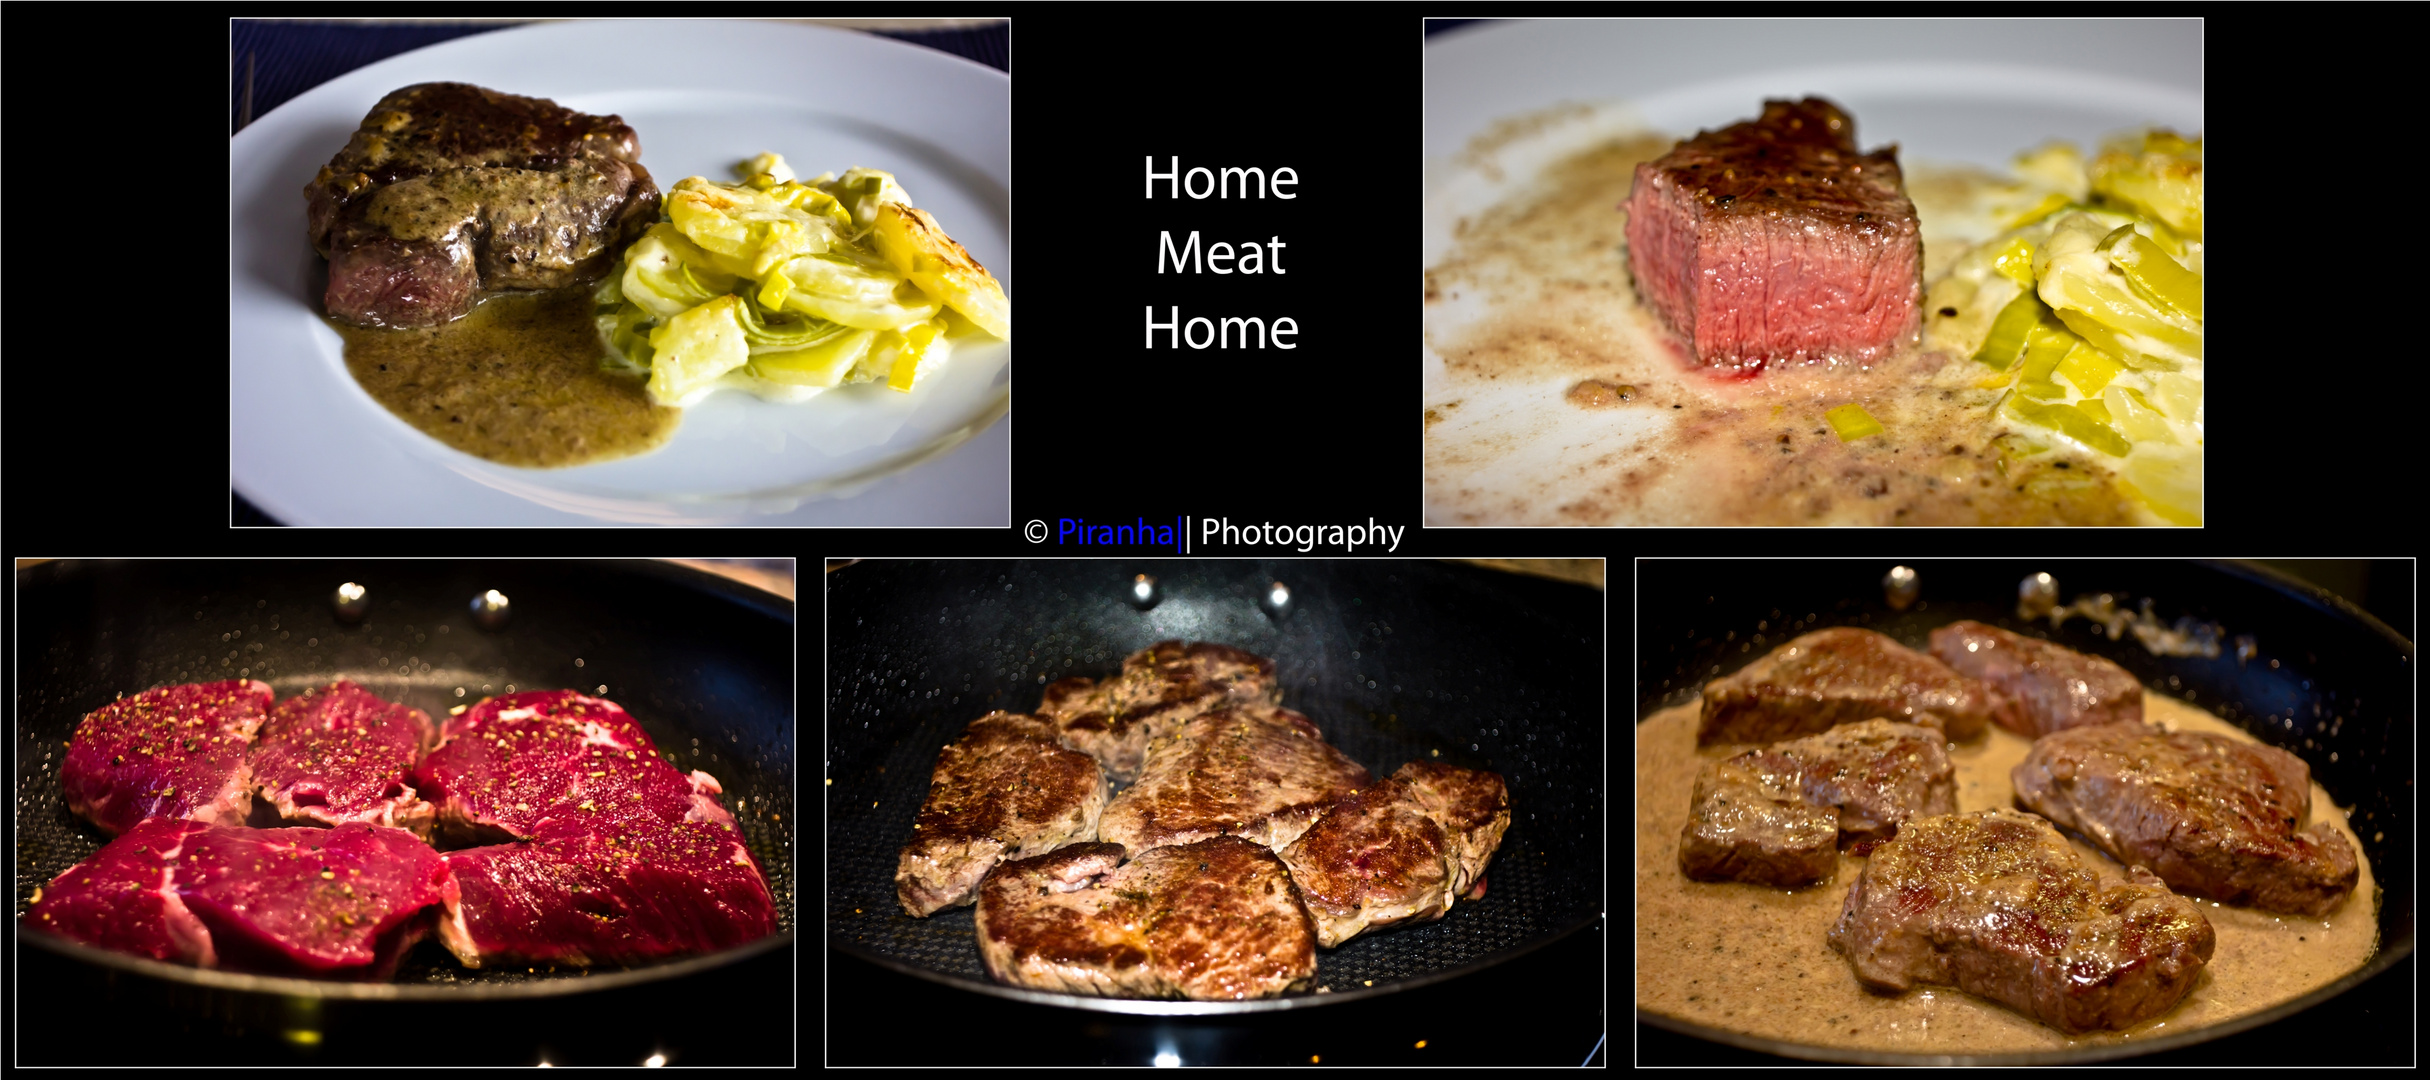 Home Meat Home